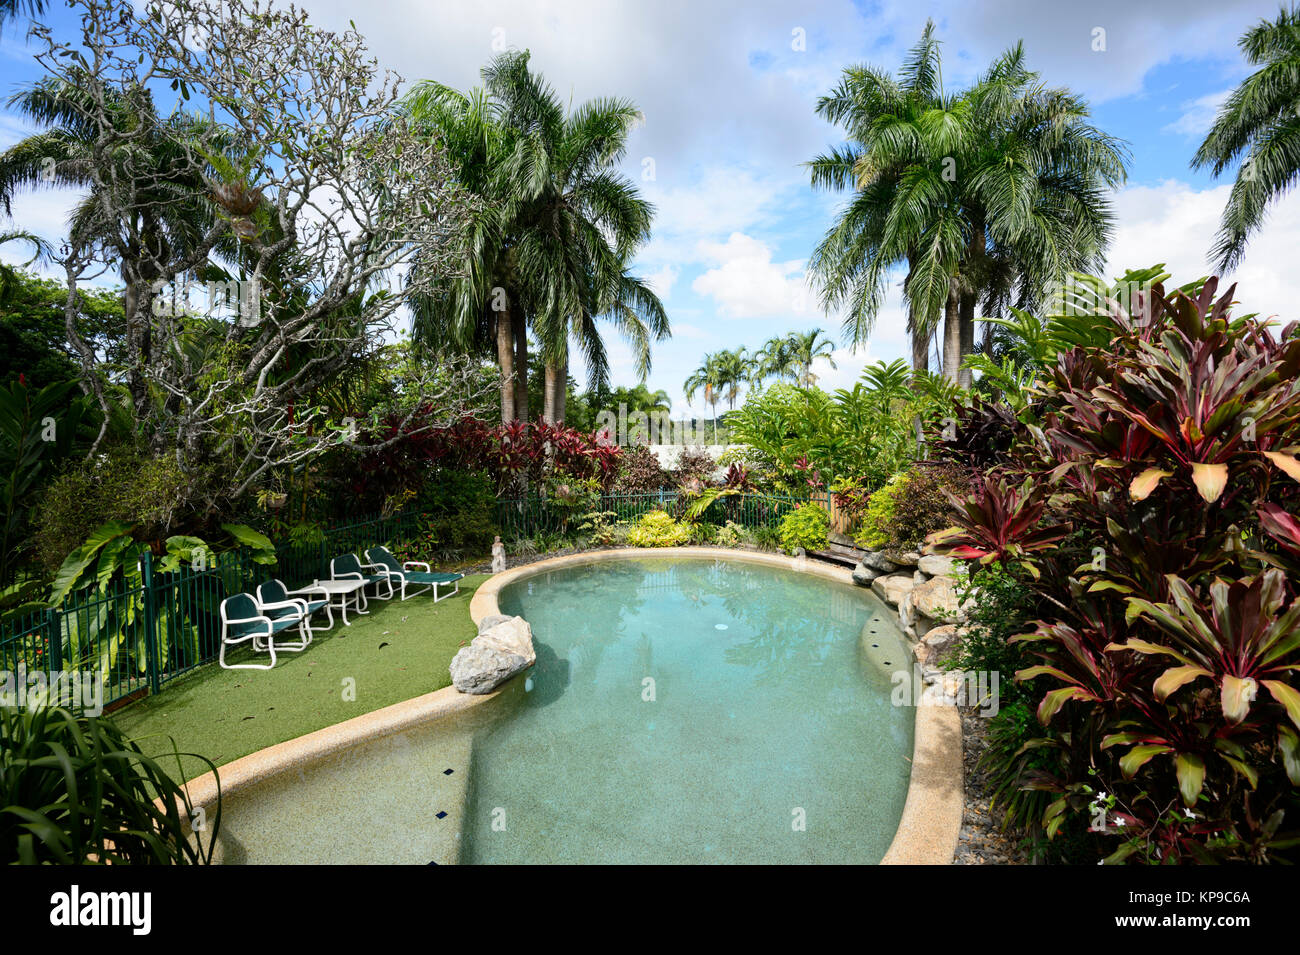 Swimming pool surrounded by lush vegetation in the wet tropics, Cairns, Far North Queensland, FNQ, QLD, Australia - Stock Image